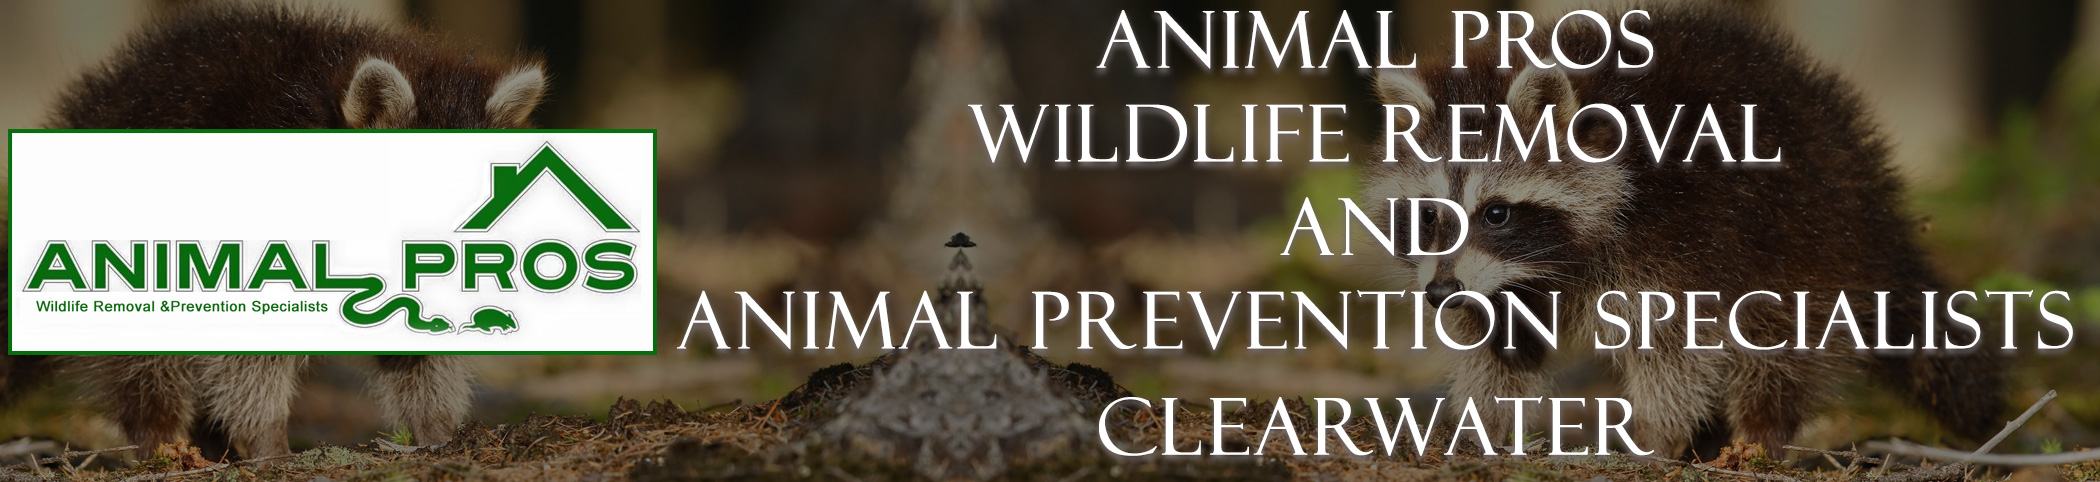 Animal Pros Largo Florida Bat Removal And Wildlife Removal Header Image